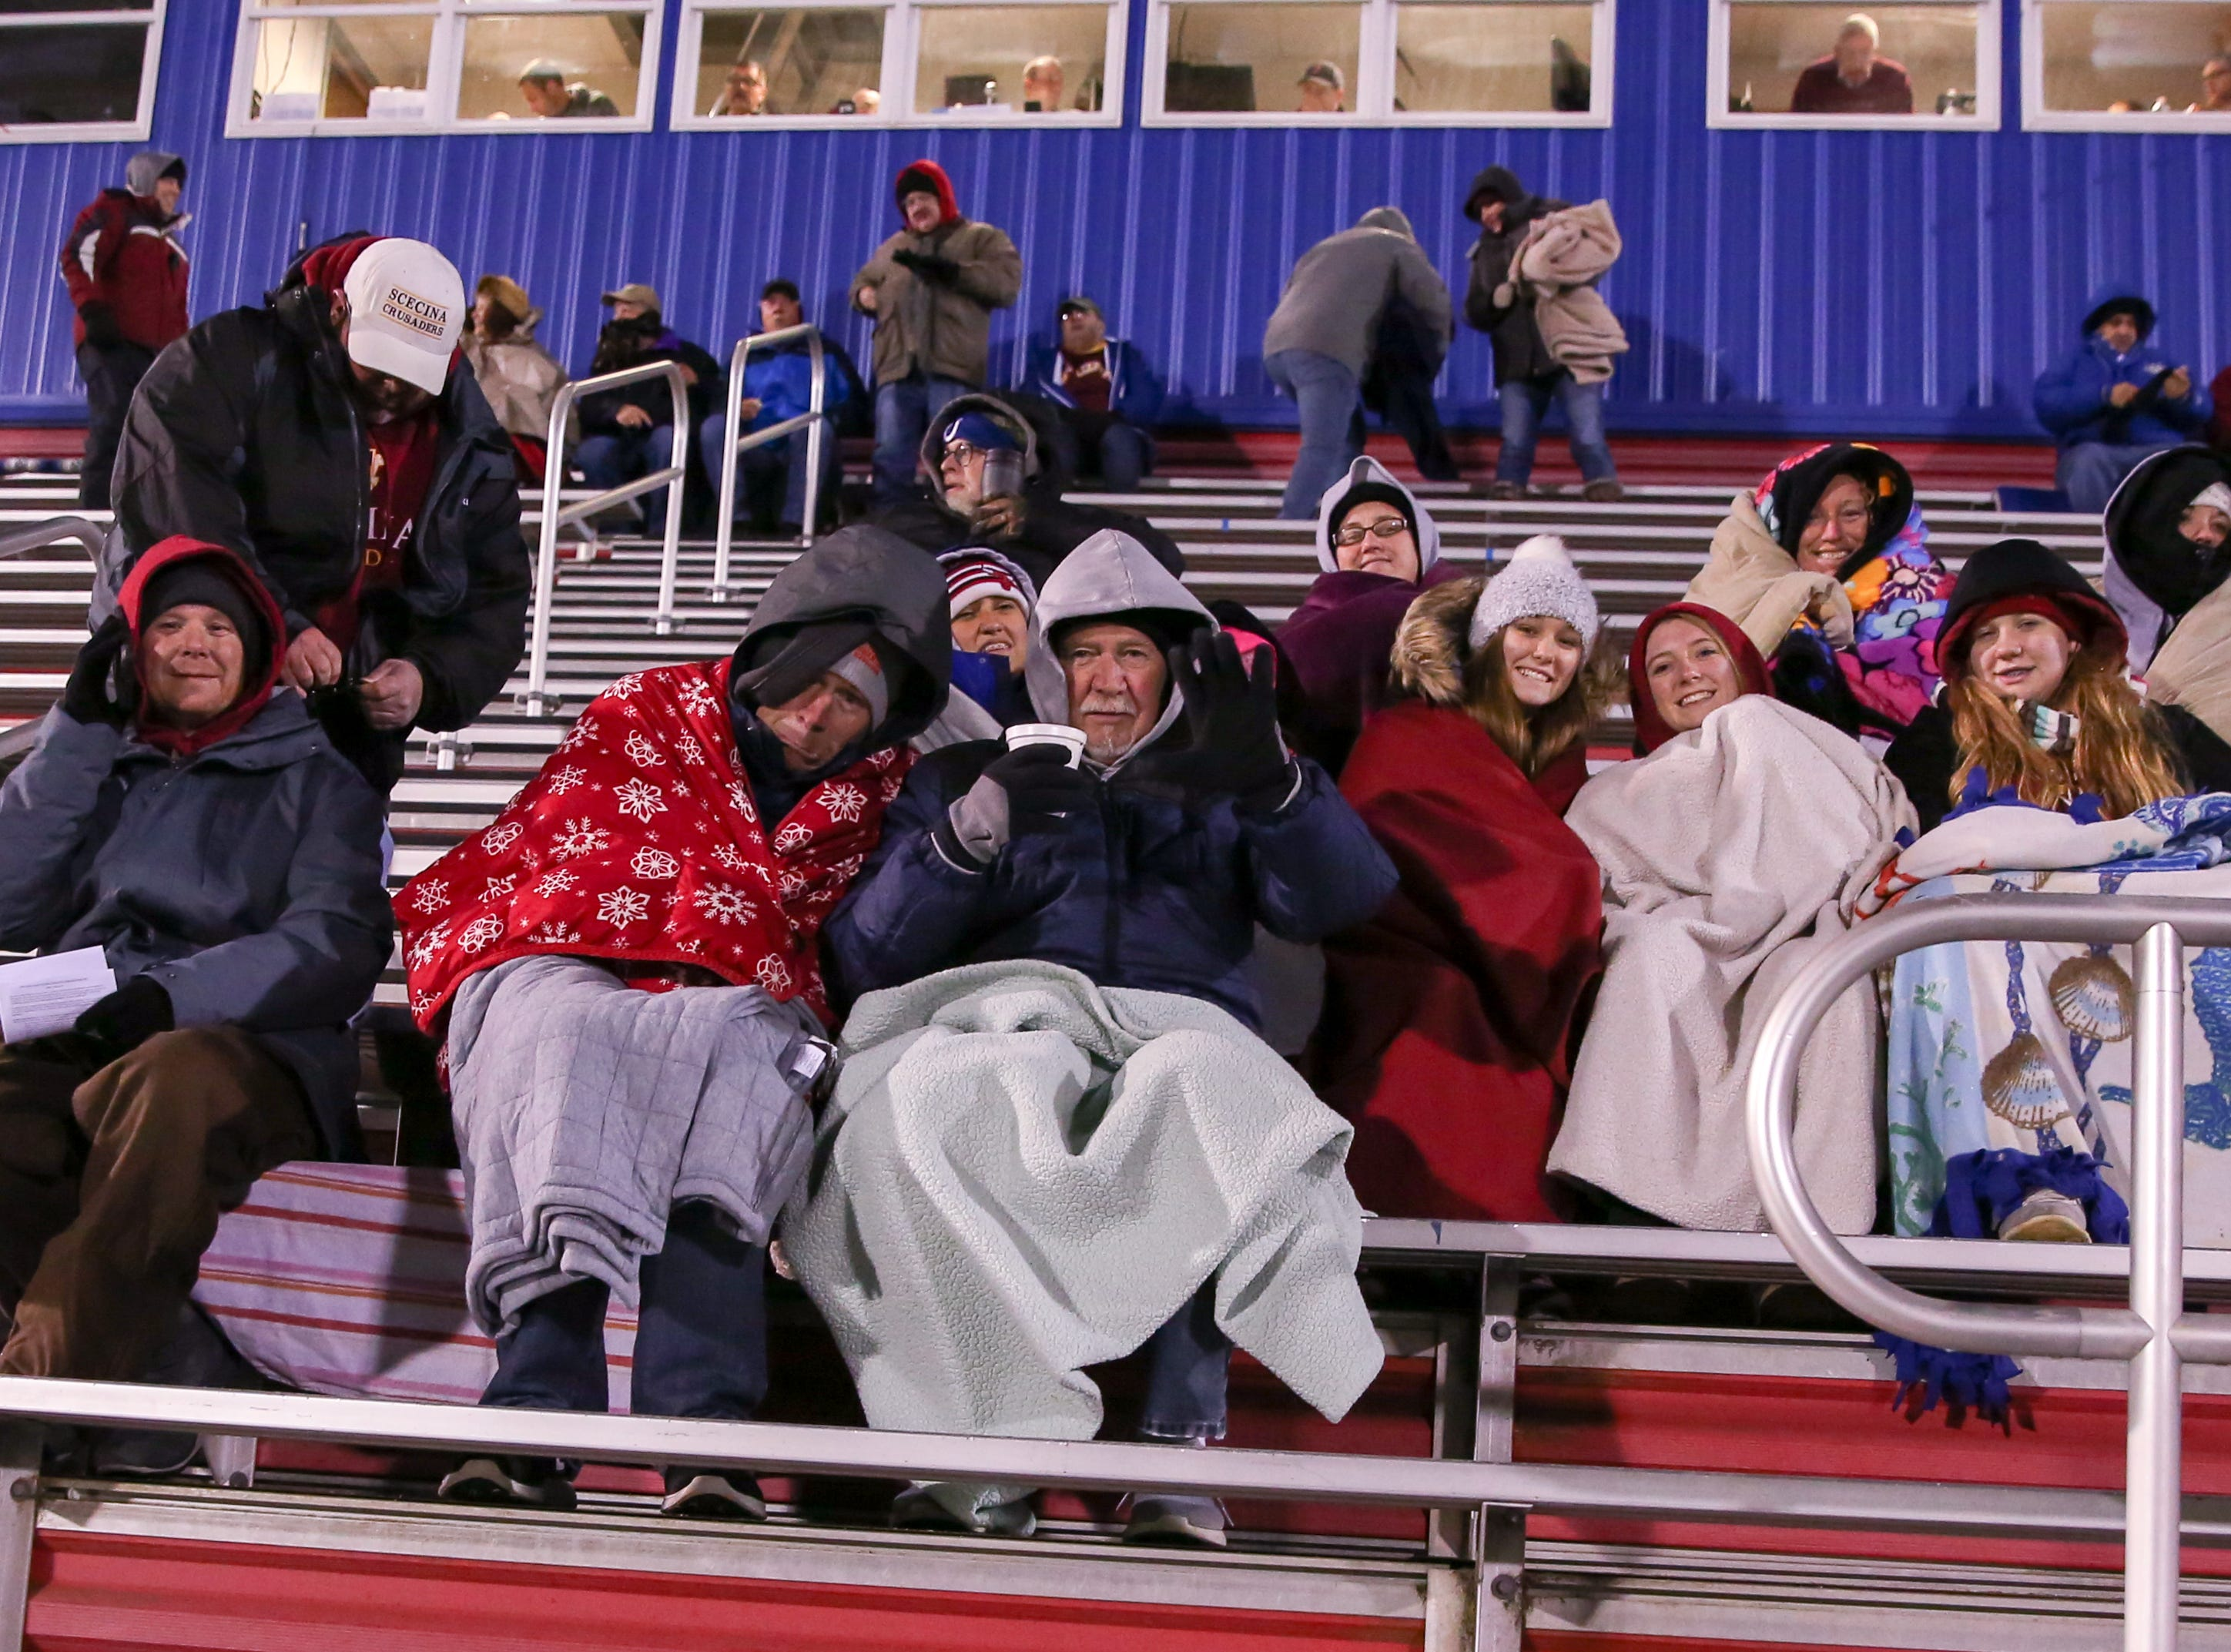 Fans try to stay warm waiting for the start of Indianapolis Scecina vs Western Boone High School varsity football in the Class 2A Regional Championship held at Roncalli High School, Friday, November 9, 2018.